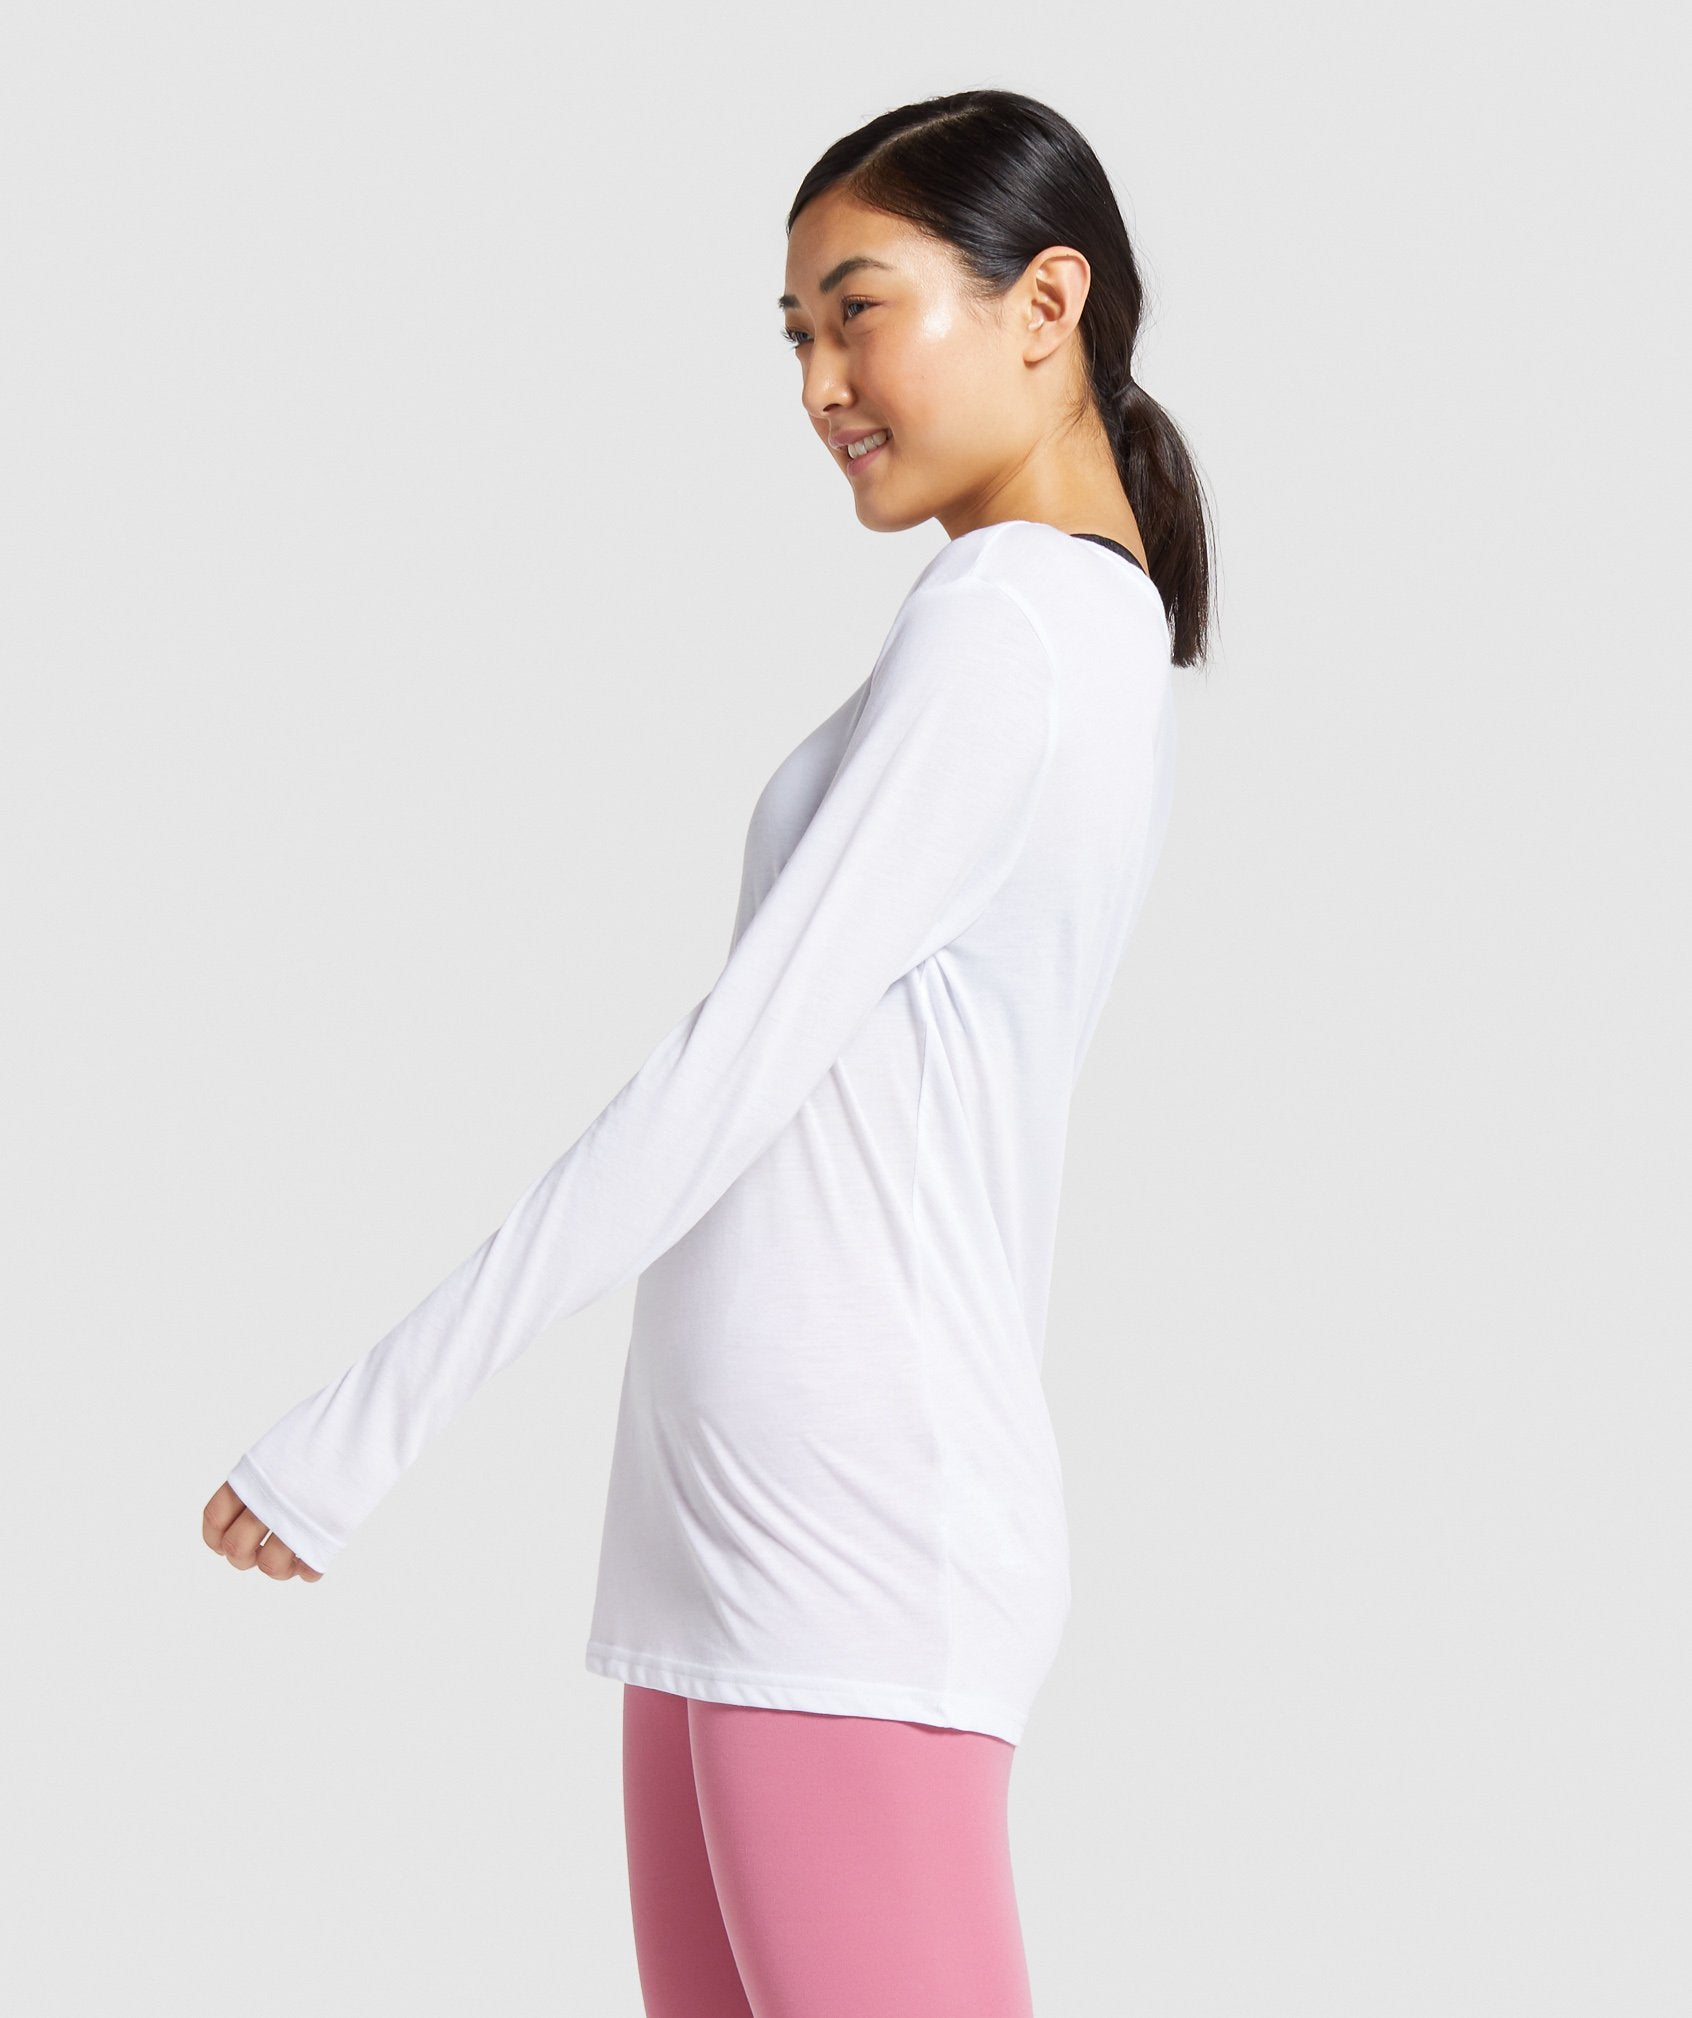 Classier: Buy Gymshark Training Oversized Long Sleeve Tee - White - Gymshark